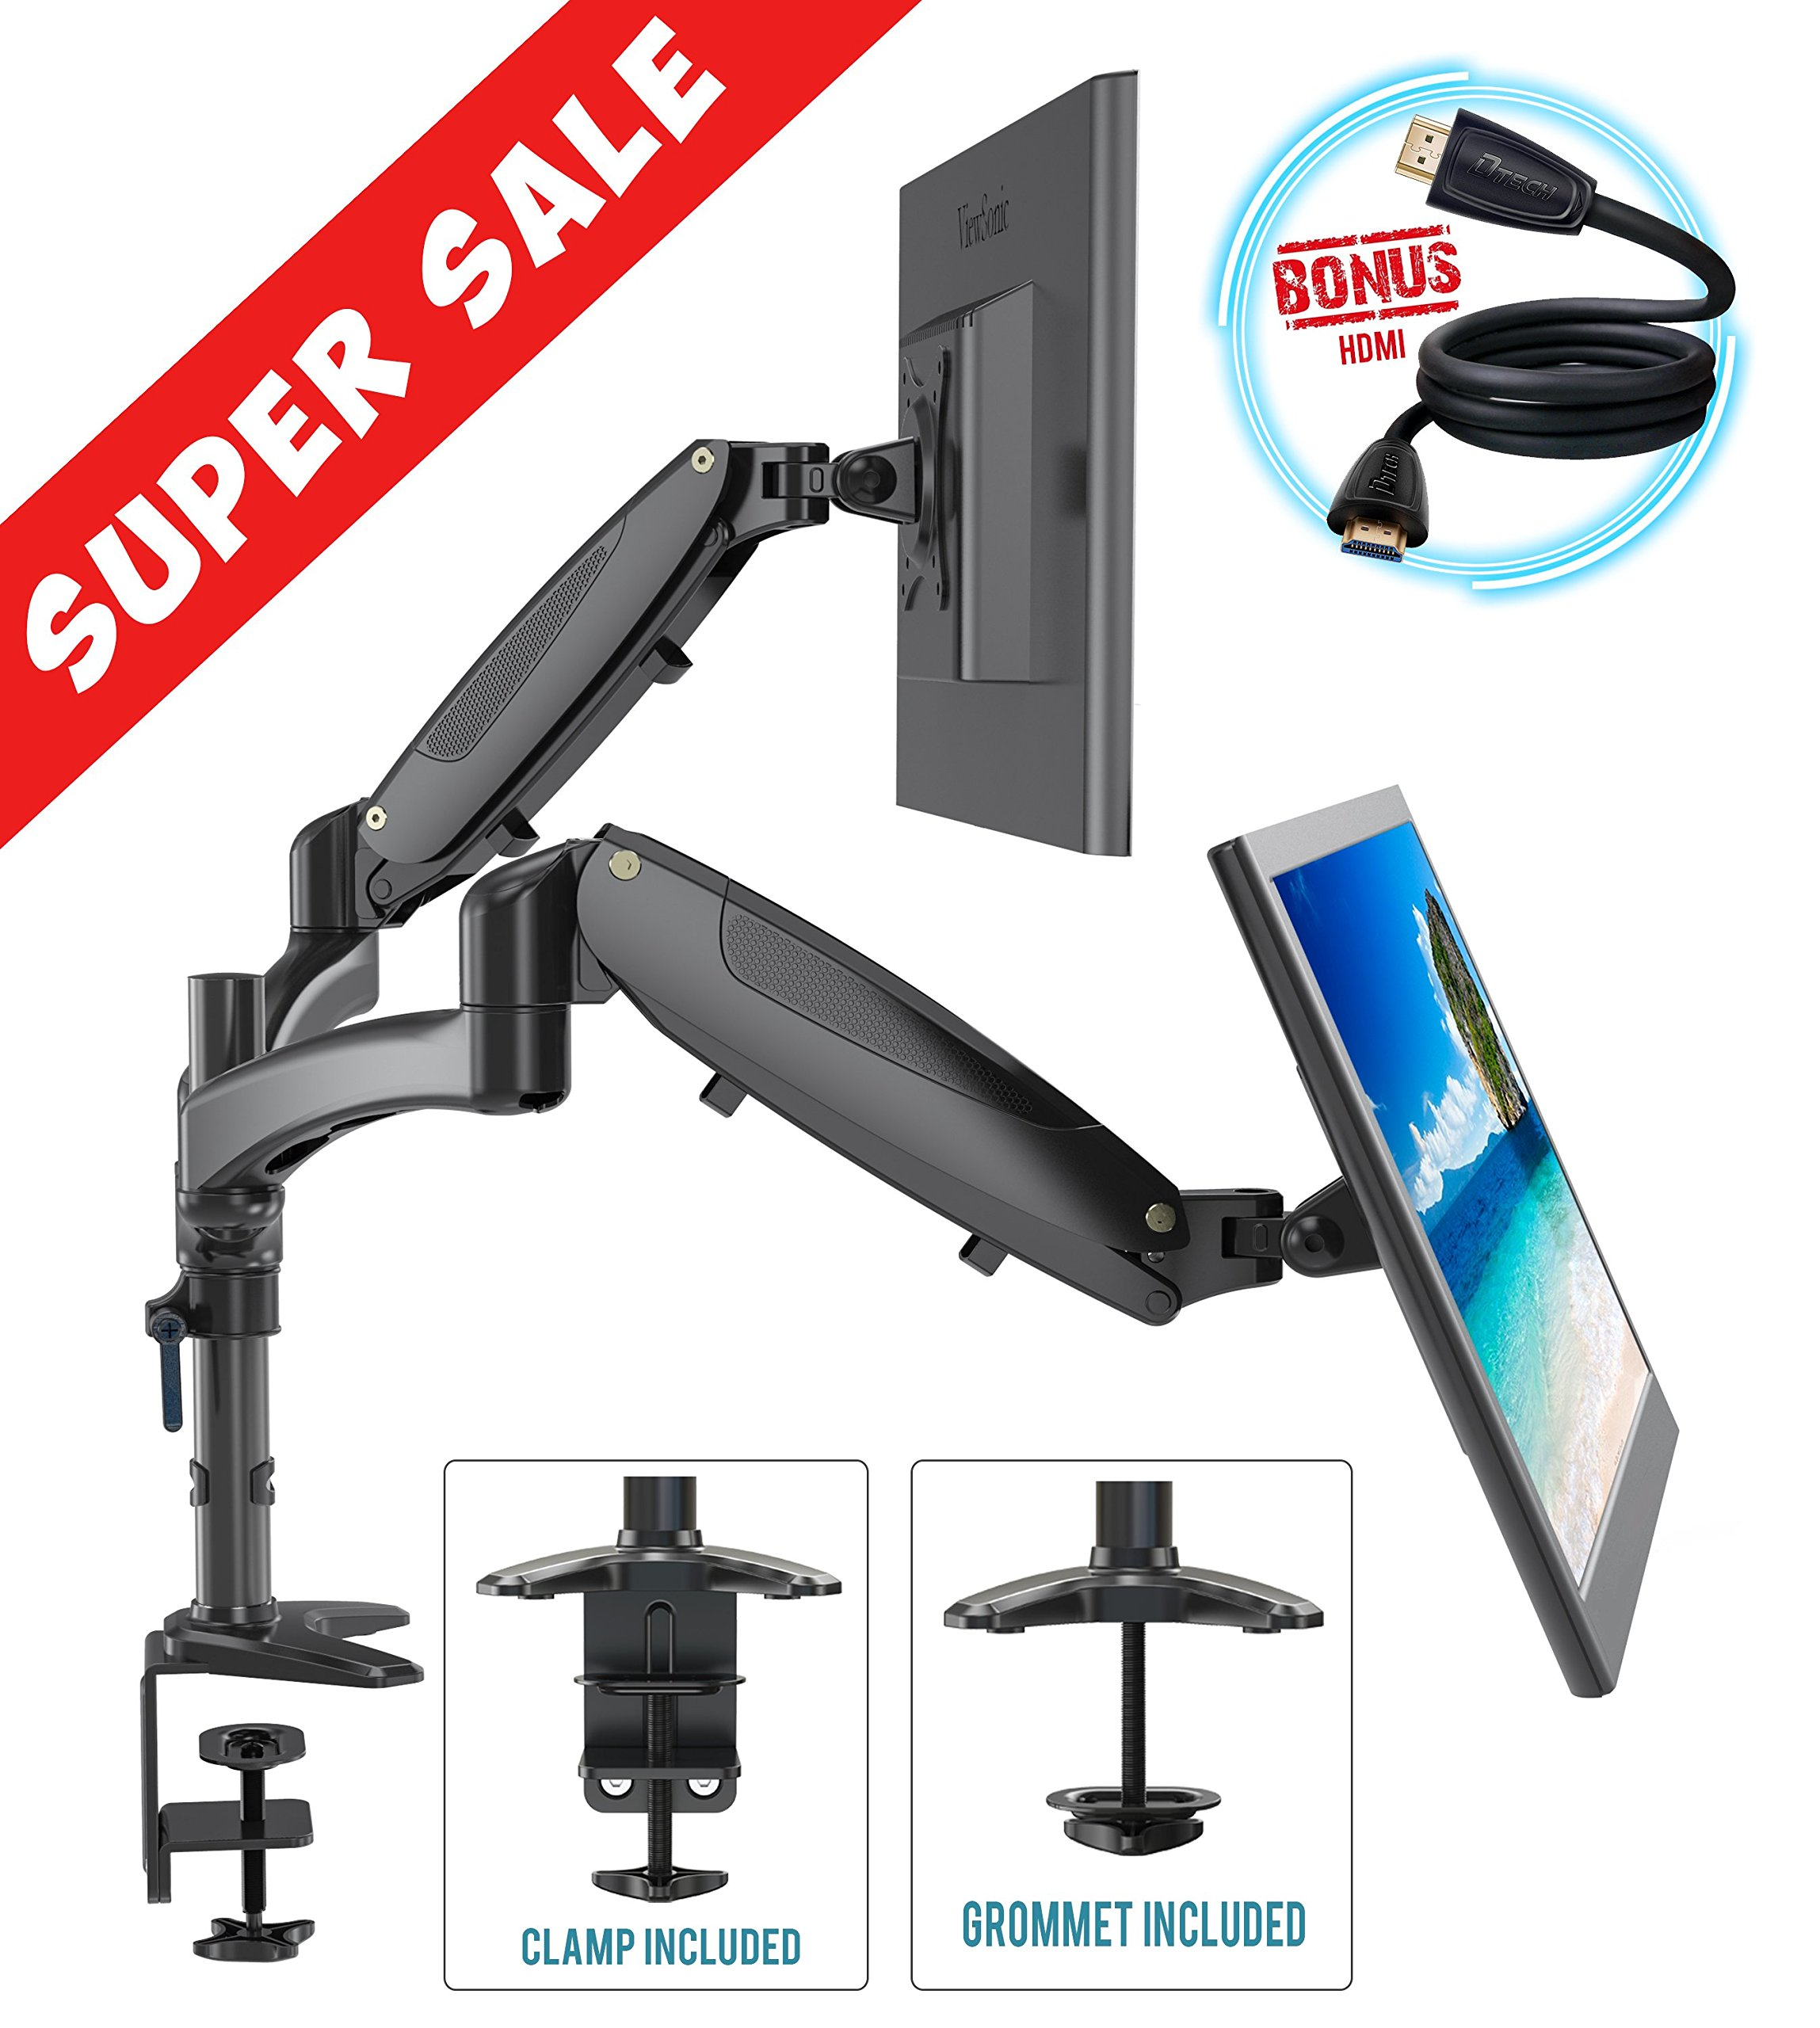 Dual Computer Monitor Stand Arm Mount Adjustable Monitors Mounts Riser C Clamp Grommet Kit HDMI Cable Management Standing Desk Converter VESA LED LCD Gas Springs Flat Screens Full Motion 15 To 27 inch